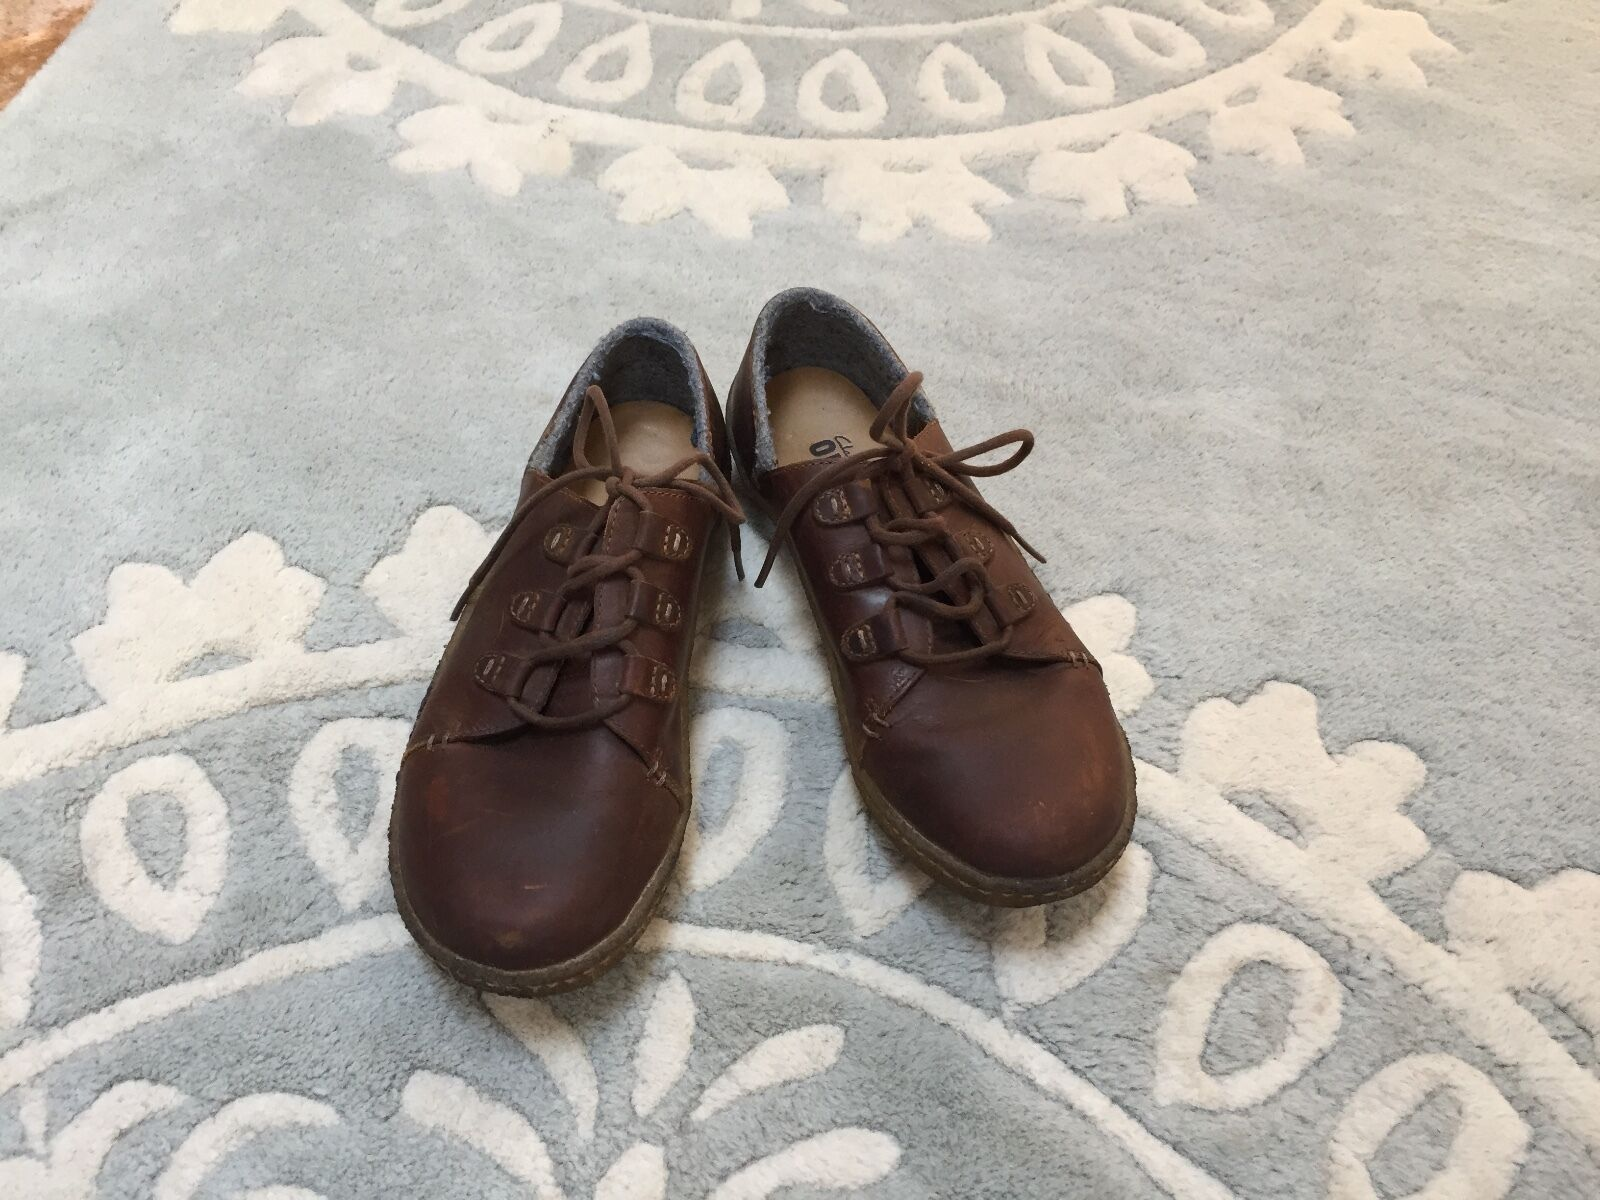 Clarks Originals Latana Oxford Brown Maple Maple Maple Leather Lace Up shoes Crepe Sole 7 8c7f74